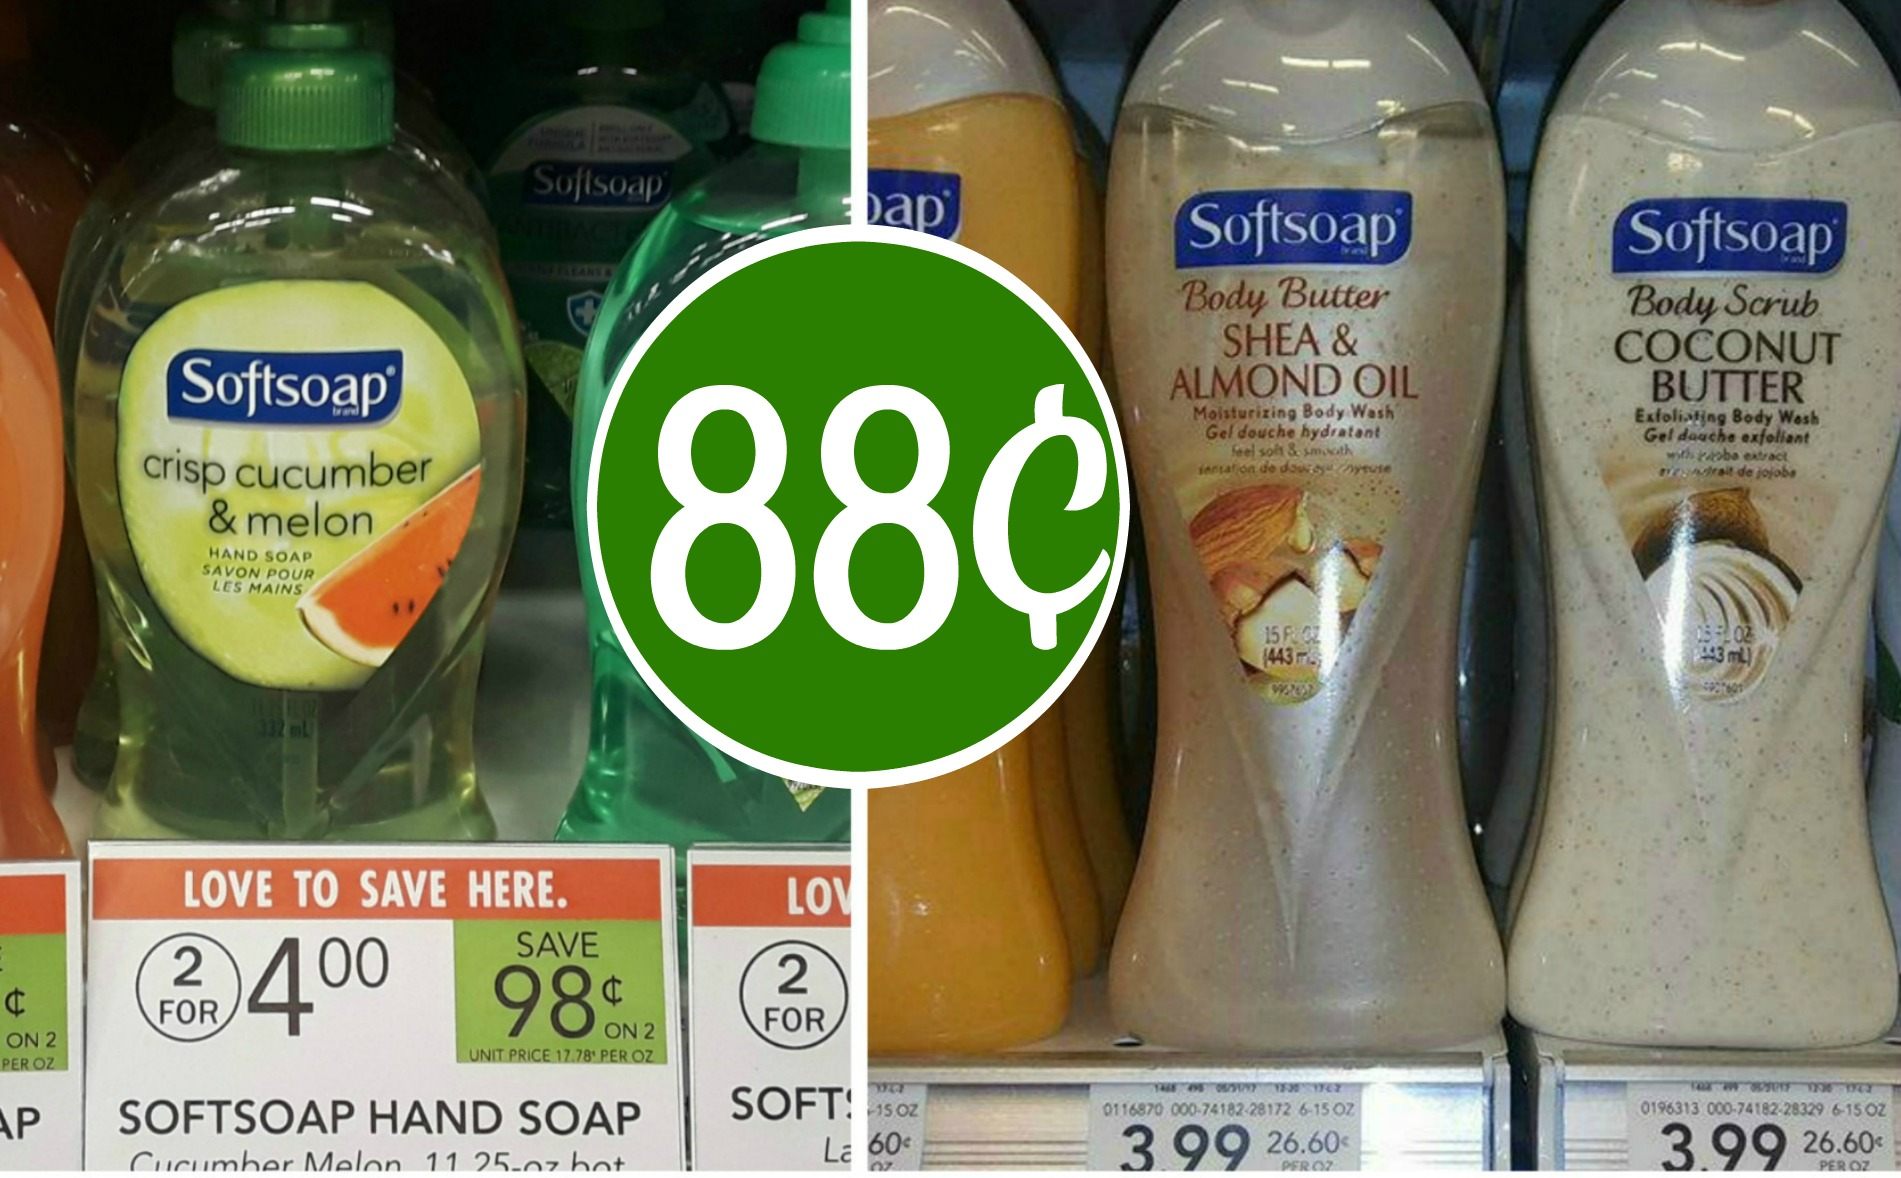 photograph regarding Softsoap Printable Coupon known as Tender Cleaning soap System Clean Hand Cleaning soap 88¢ at Publix My Publix